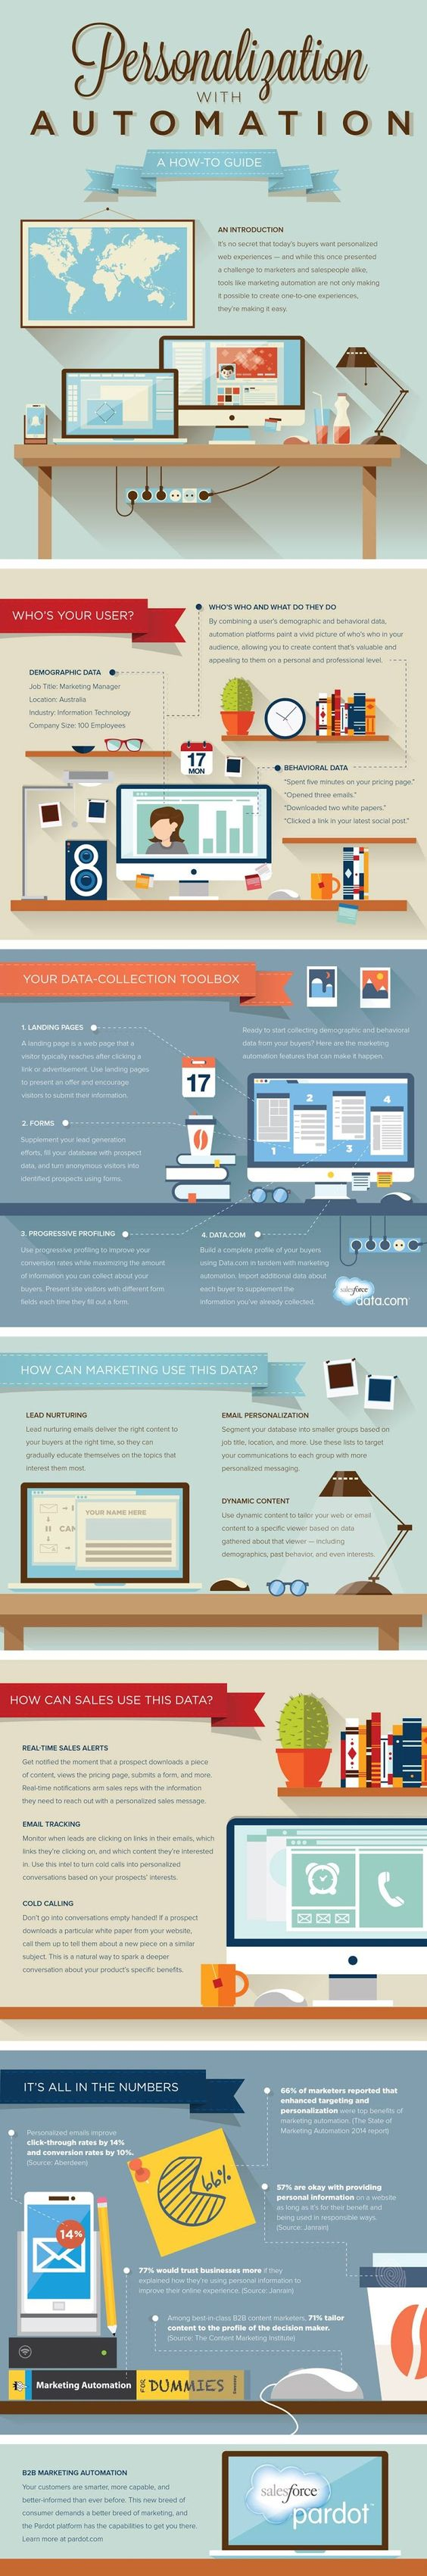 Infographic Of The Week: A Guide To Personalization With Automation